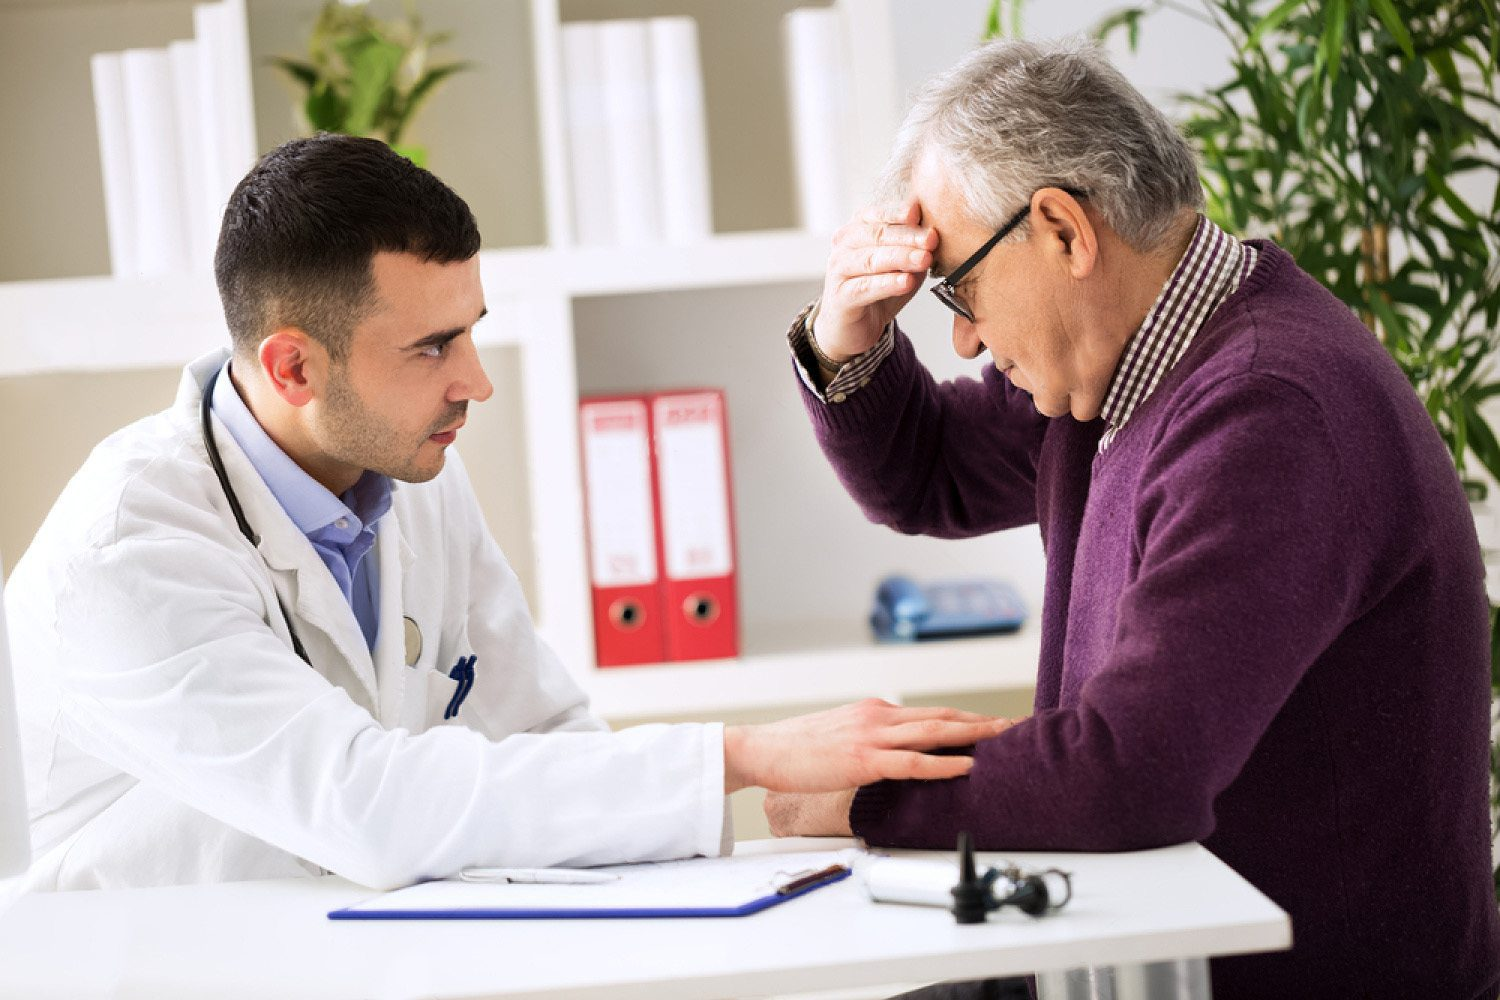 doctor listens to patient explaining headache